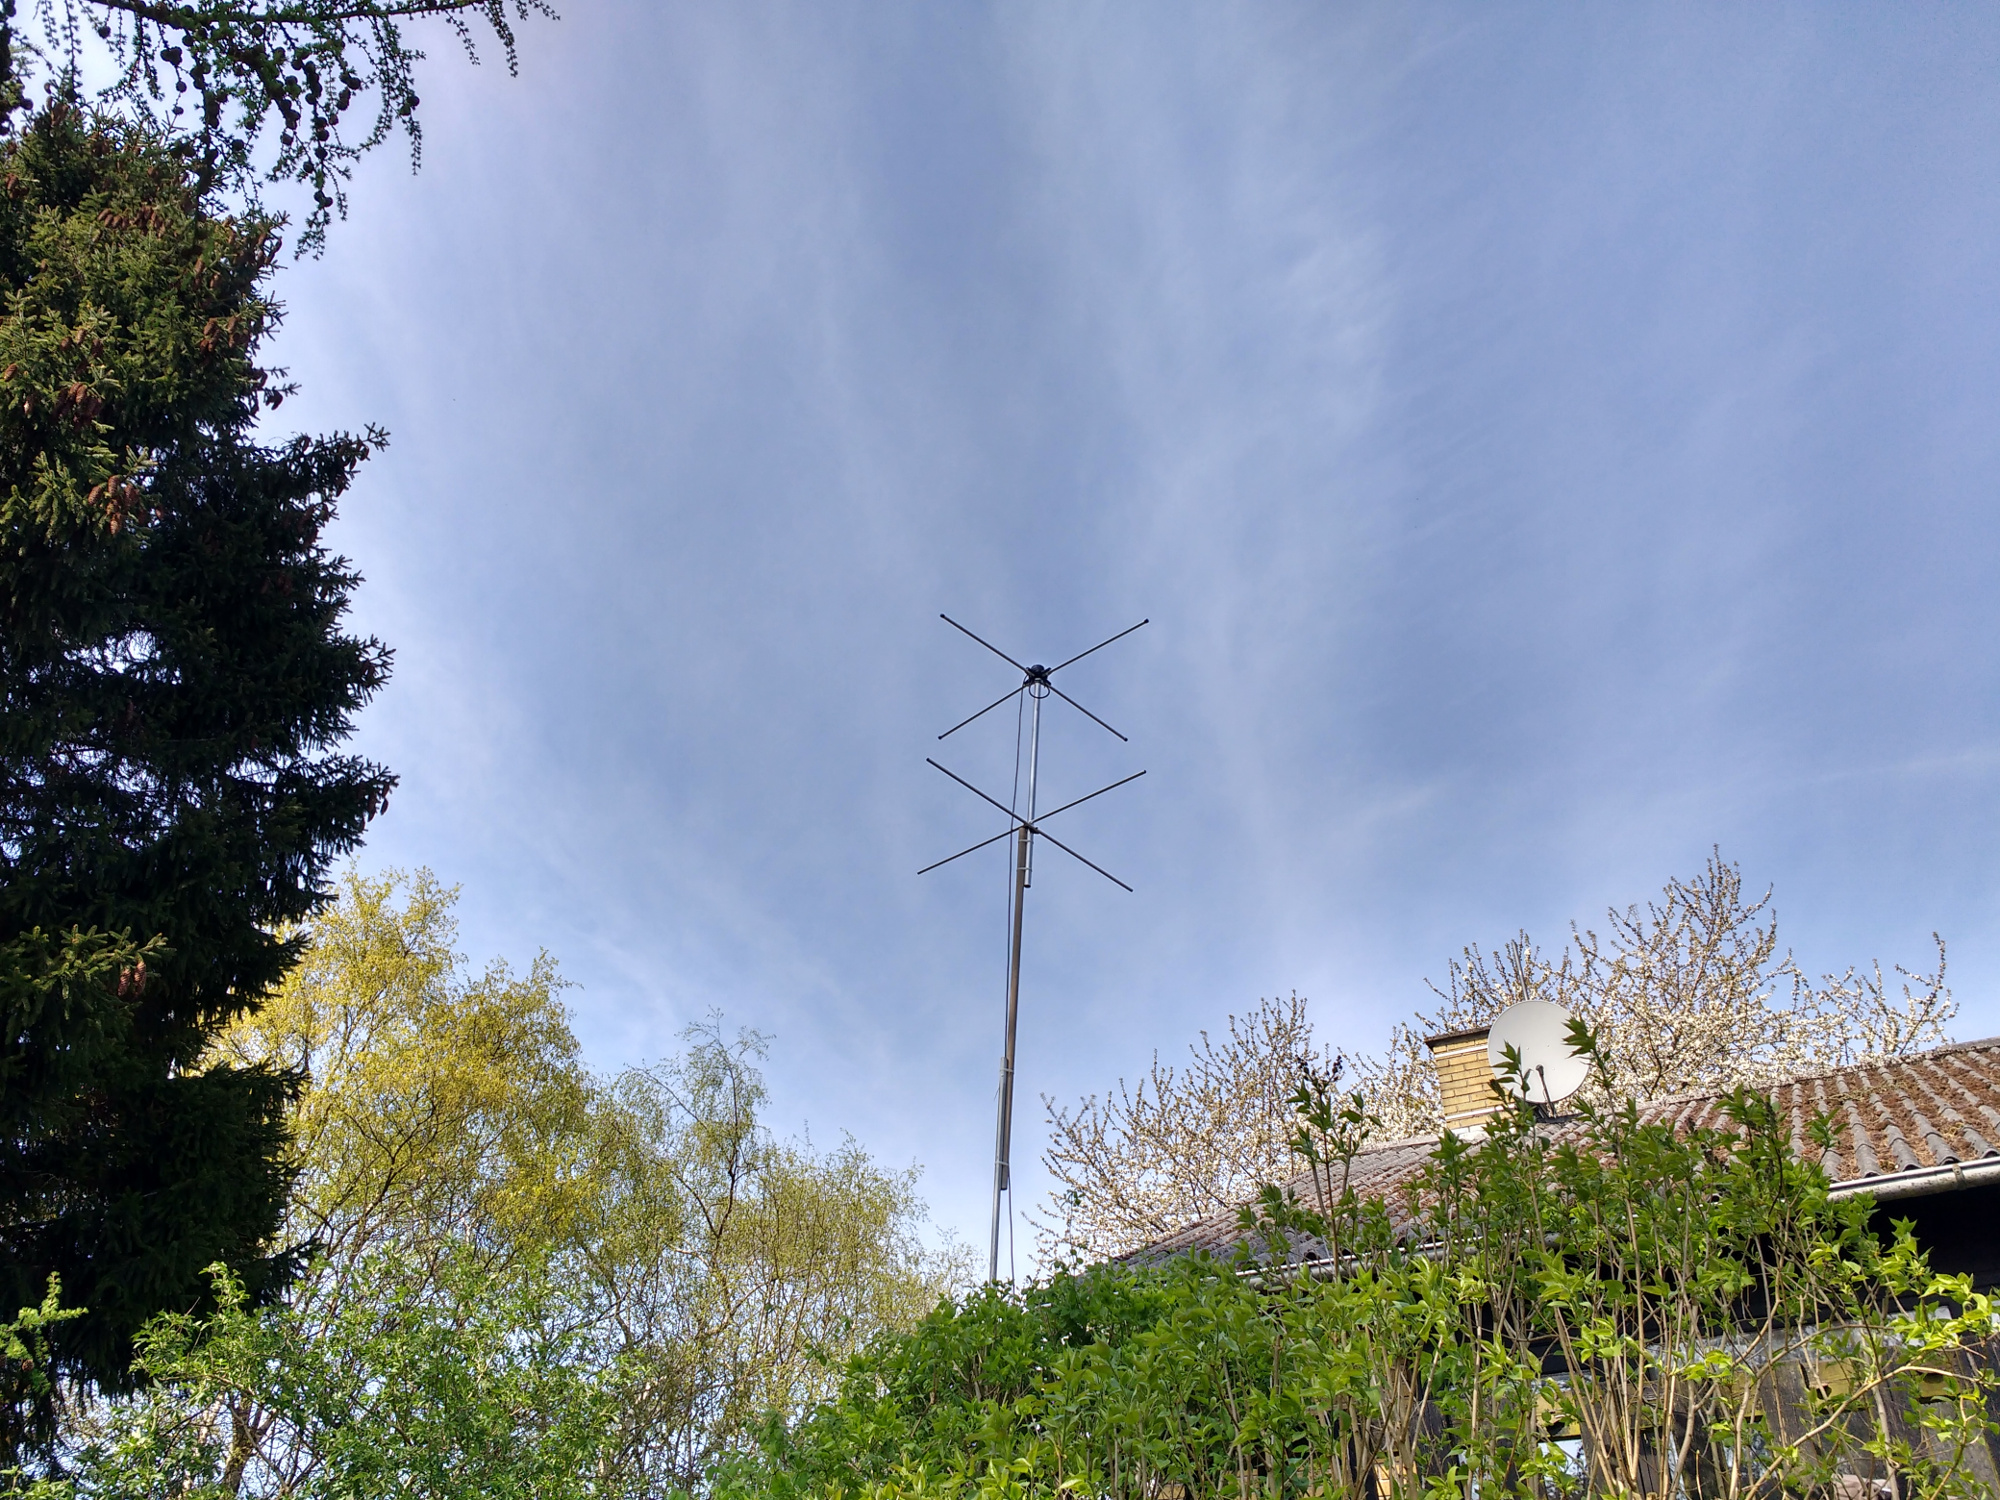 Turnstile antenna for satellite reception